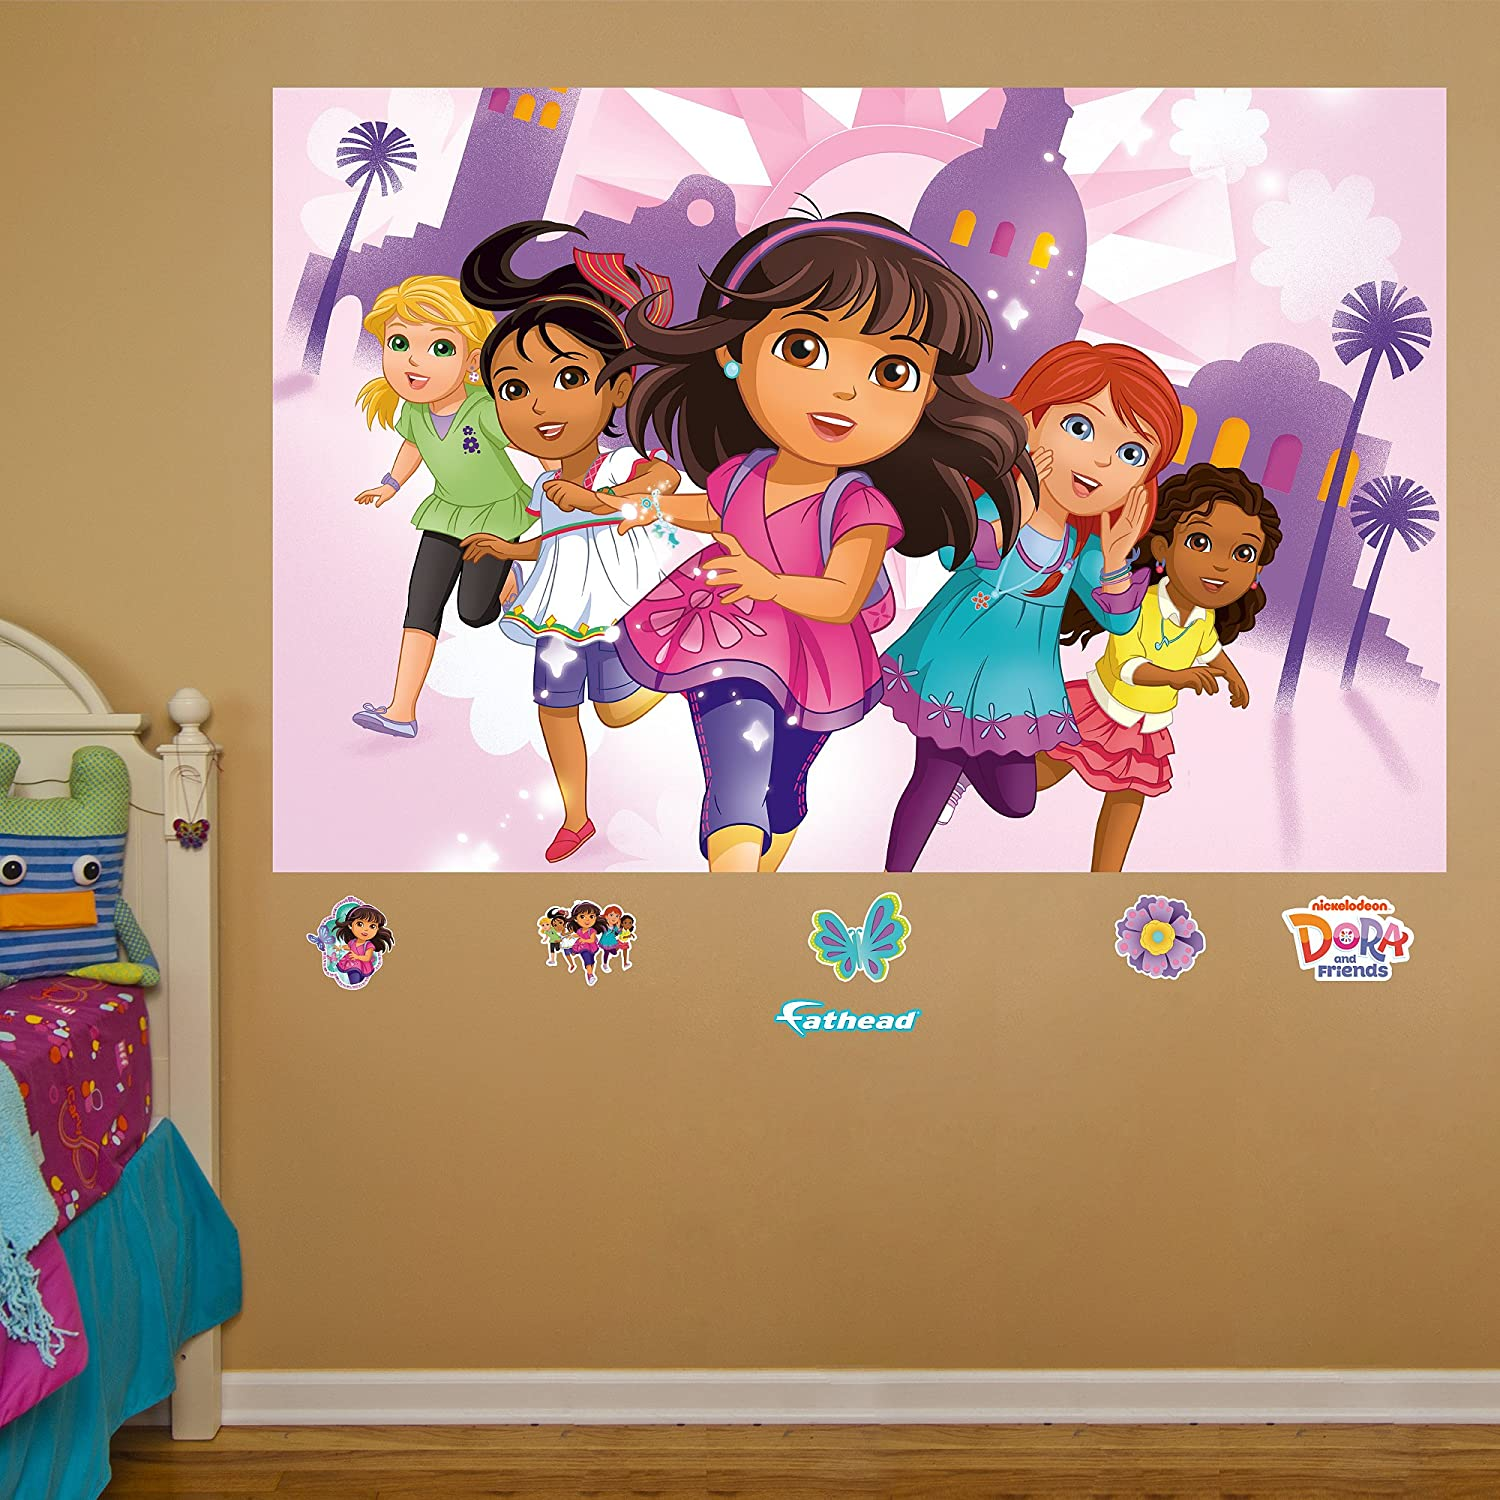 dora the explorer wall decals totally kids totally bedrooms dora friends mural